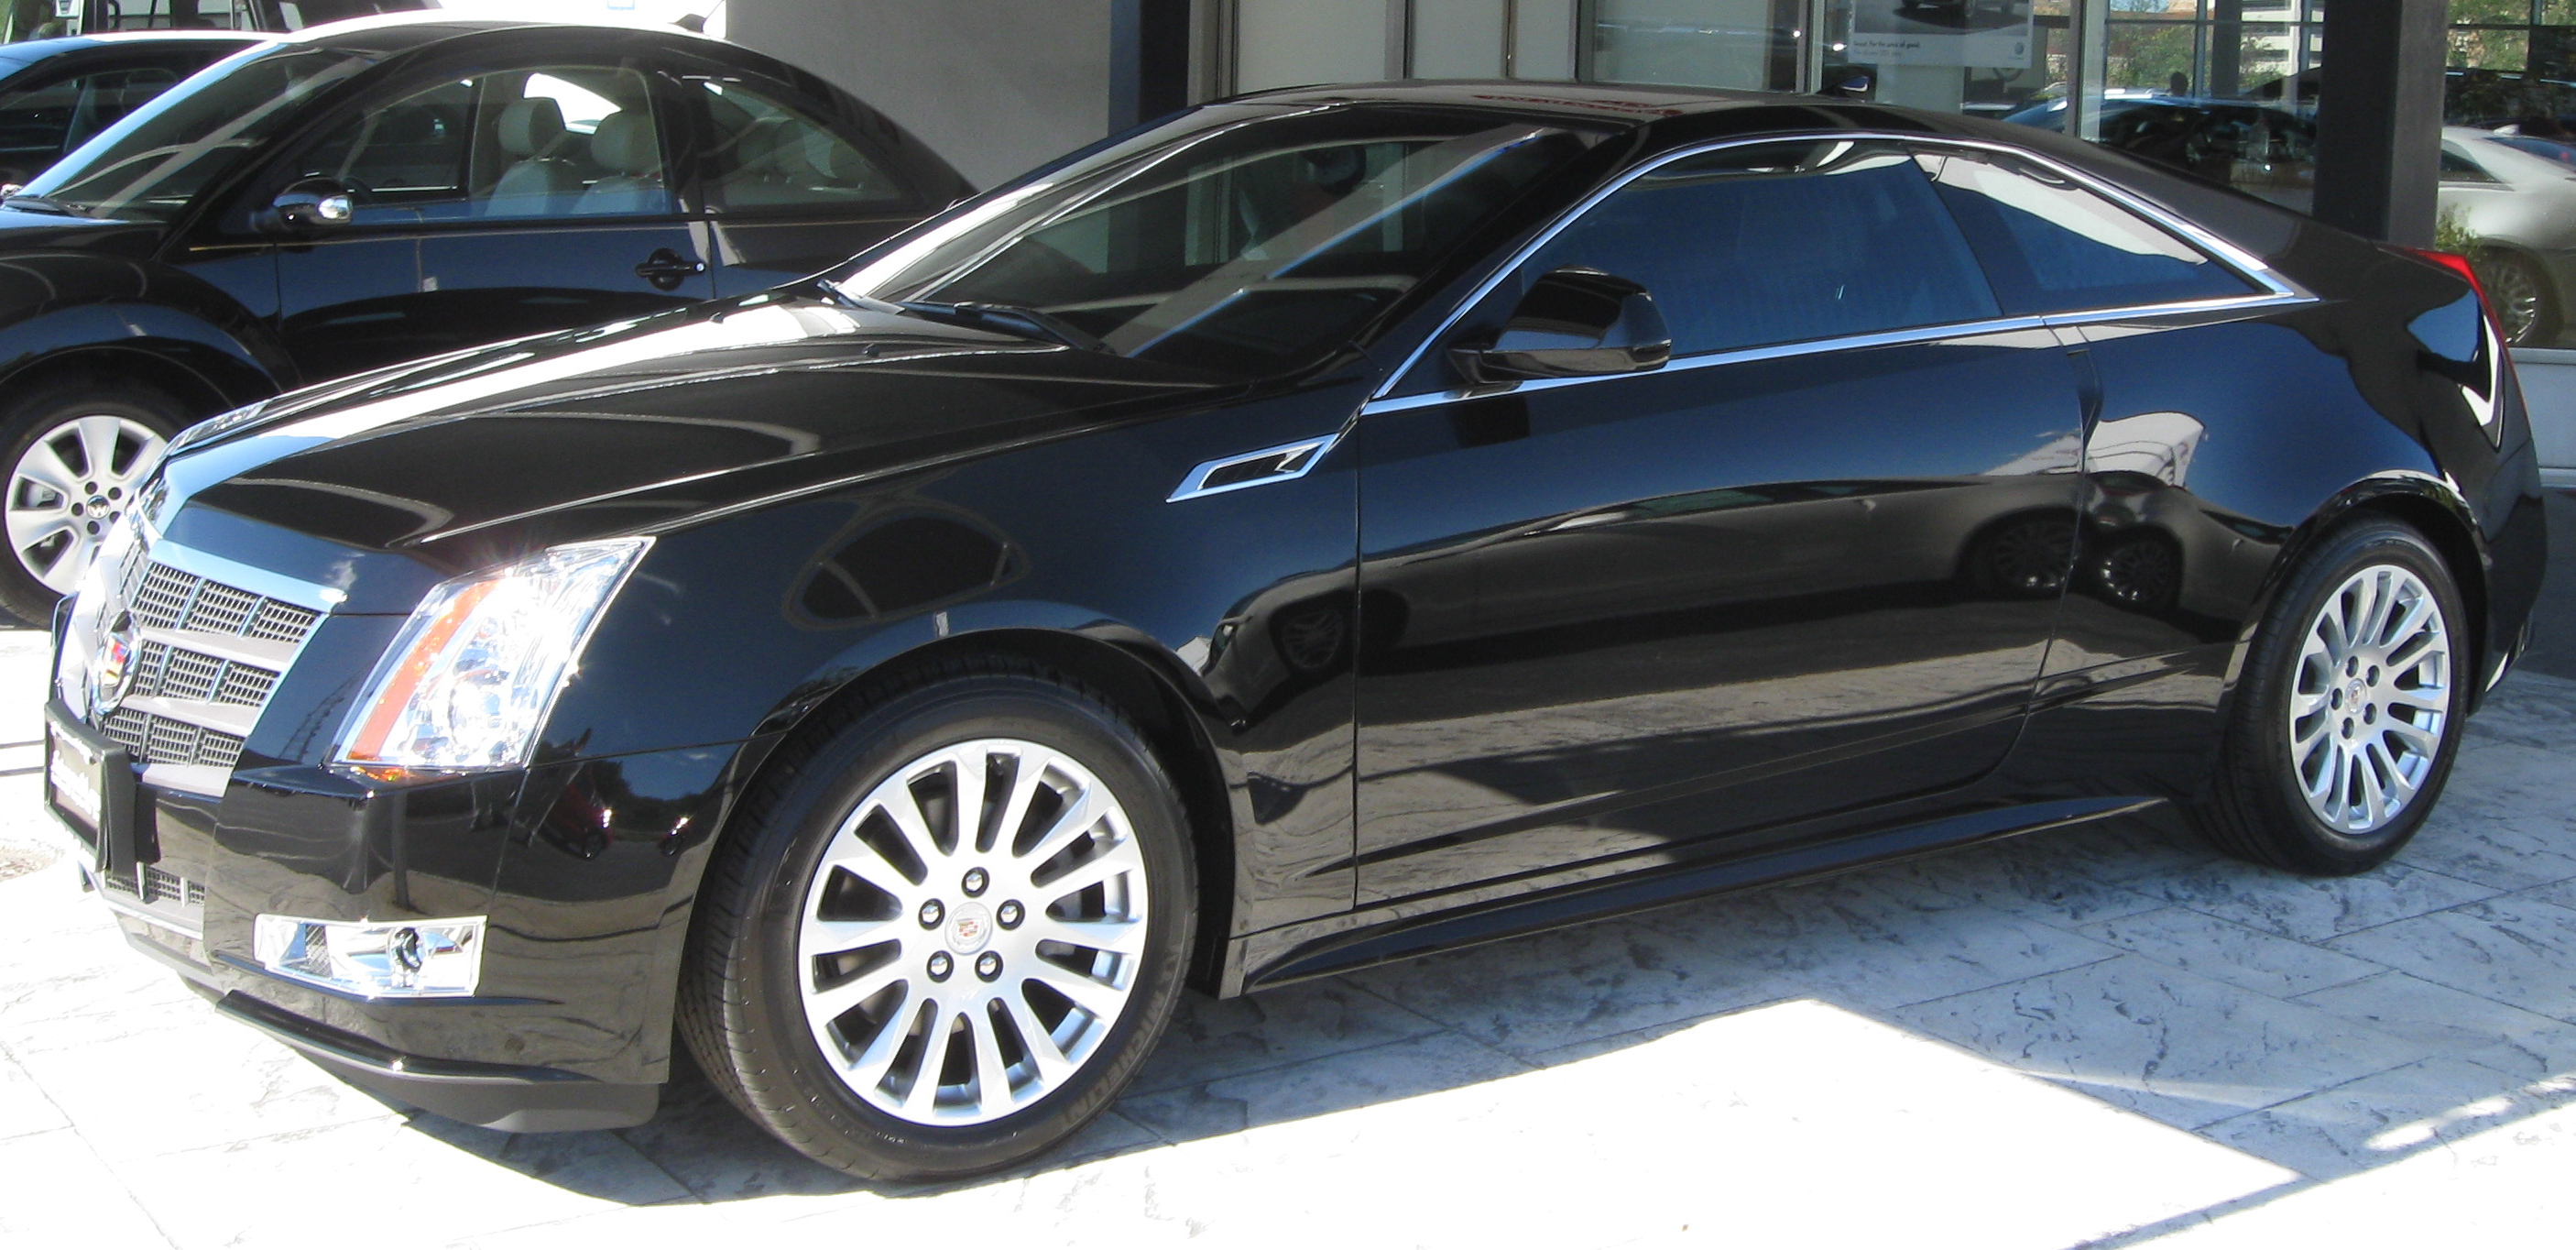 luxury wagon cadillac cts oem zombiedrive and information interior photos l fq